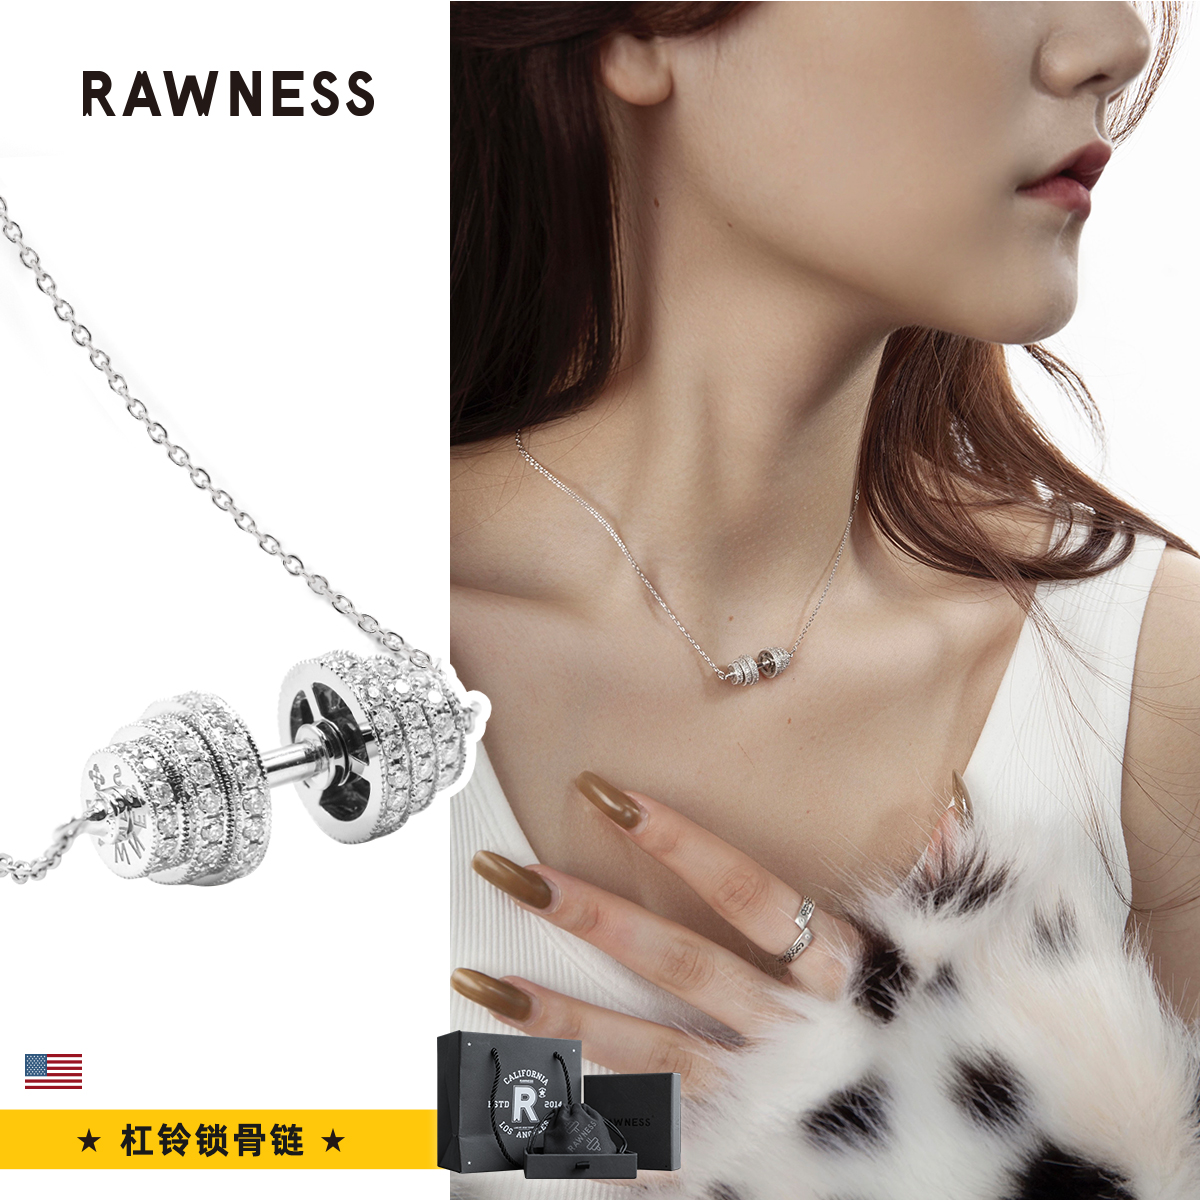 Barbell collarbone chain fitness dumbbell necklace choker pure silver delicate rotating piece RAWNESS fit